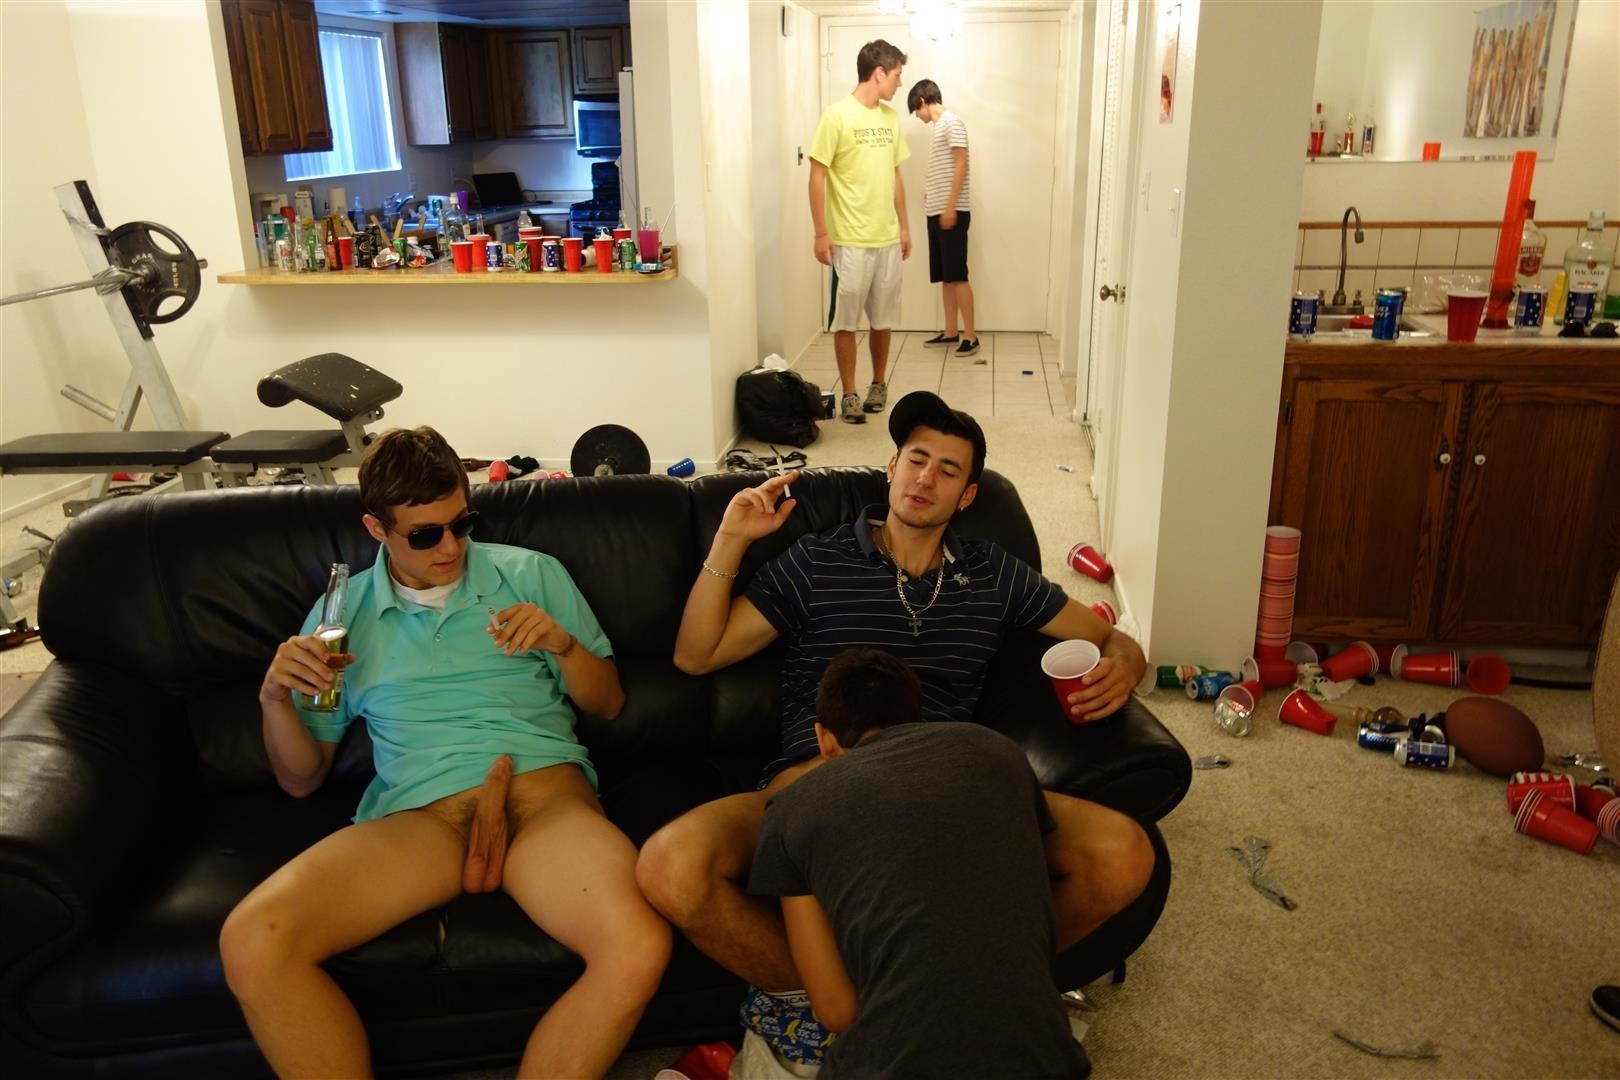 Fraternity X Drunk Frat Pledge Gets Barebacked While Passed Out Amateur Gay Porn 08 Drunk And Passed Out Frat Pledge Gets Fucked Bareback